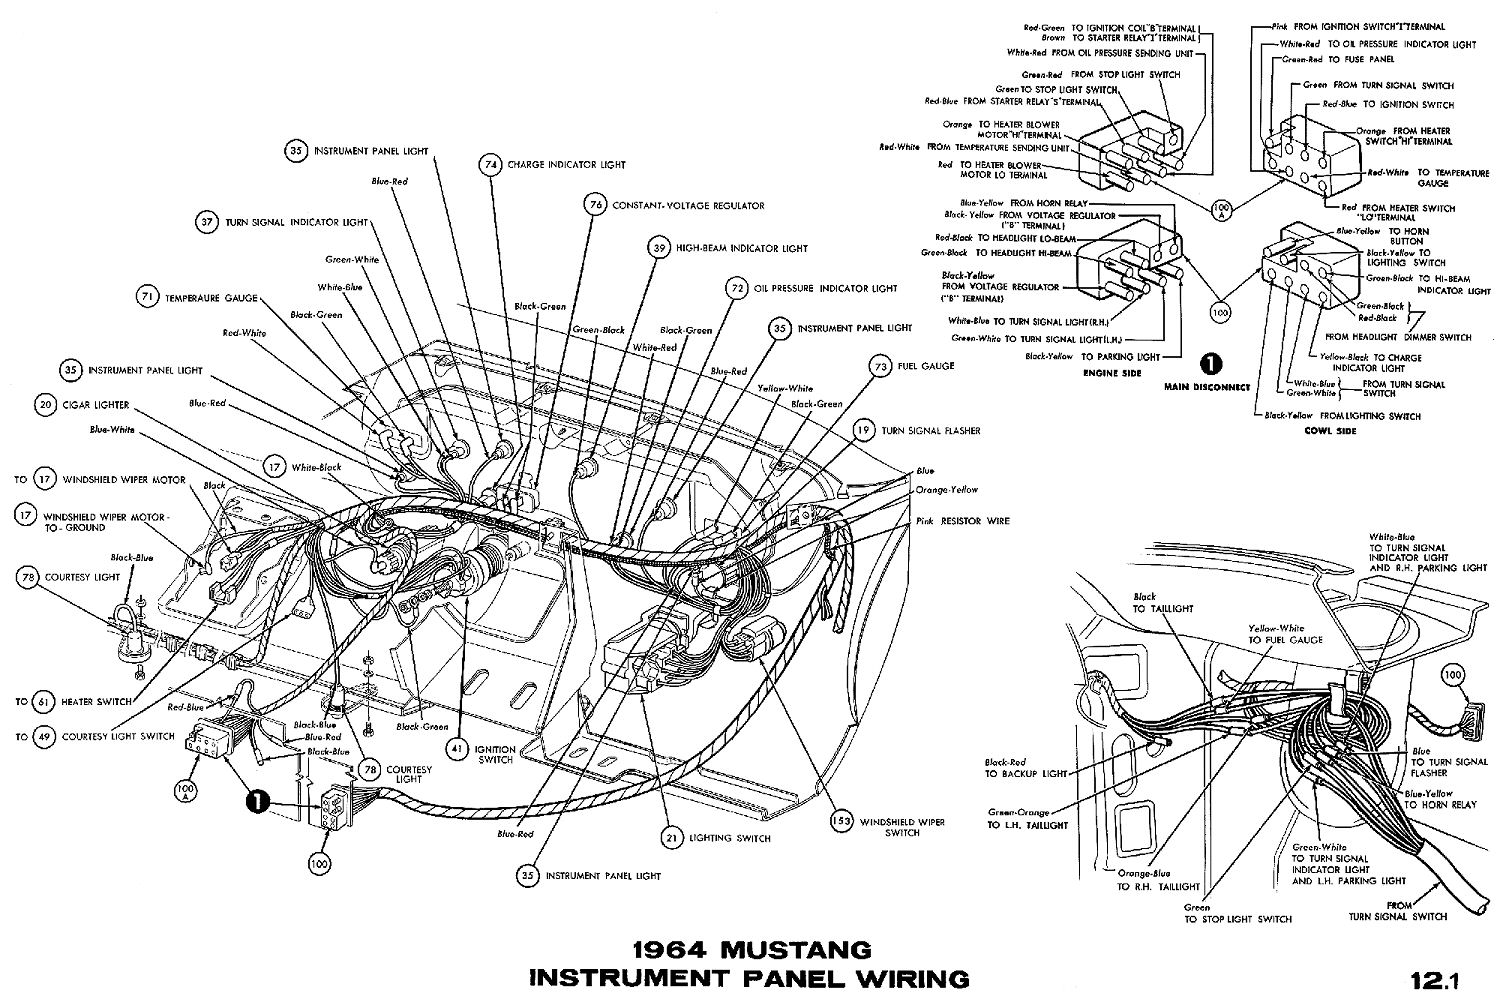 64 Mustang Wiring Diagram Schemes 2006 Ford Stereo 1964 Diagrams Average Joe Restoration Colors